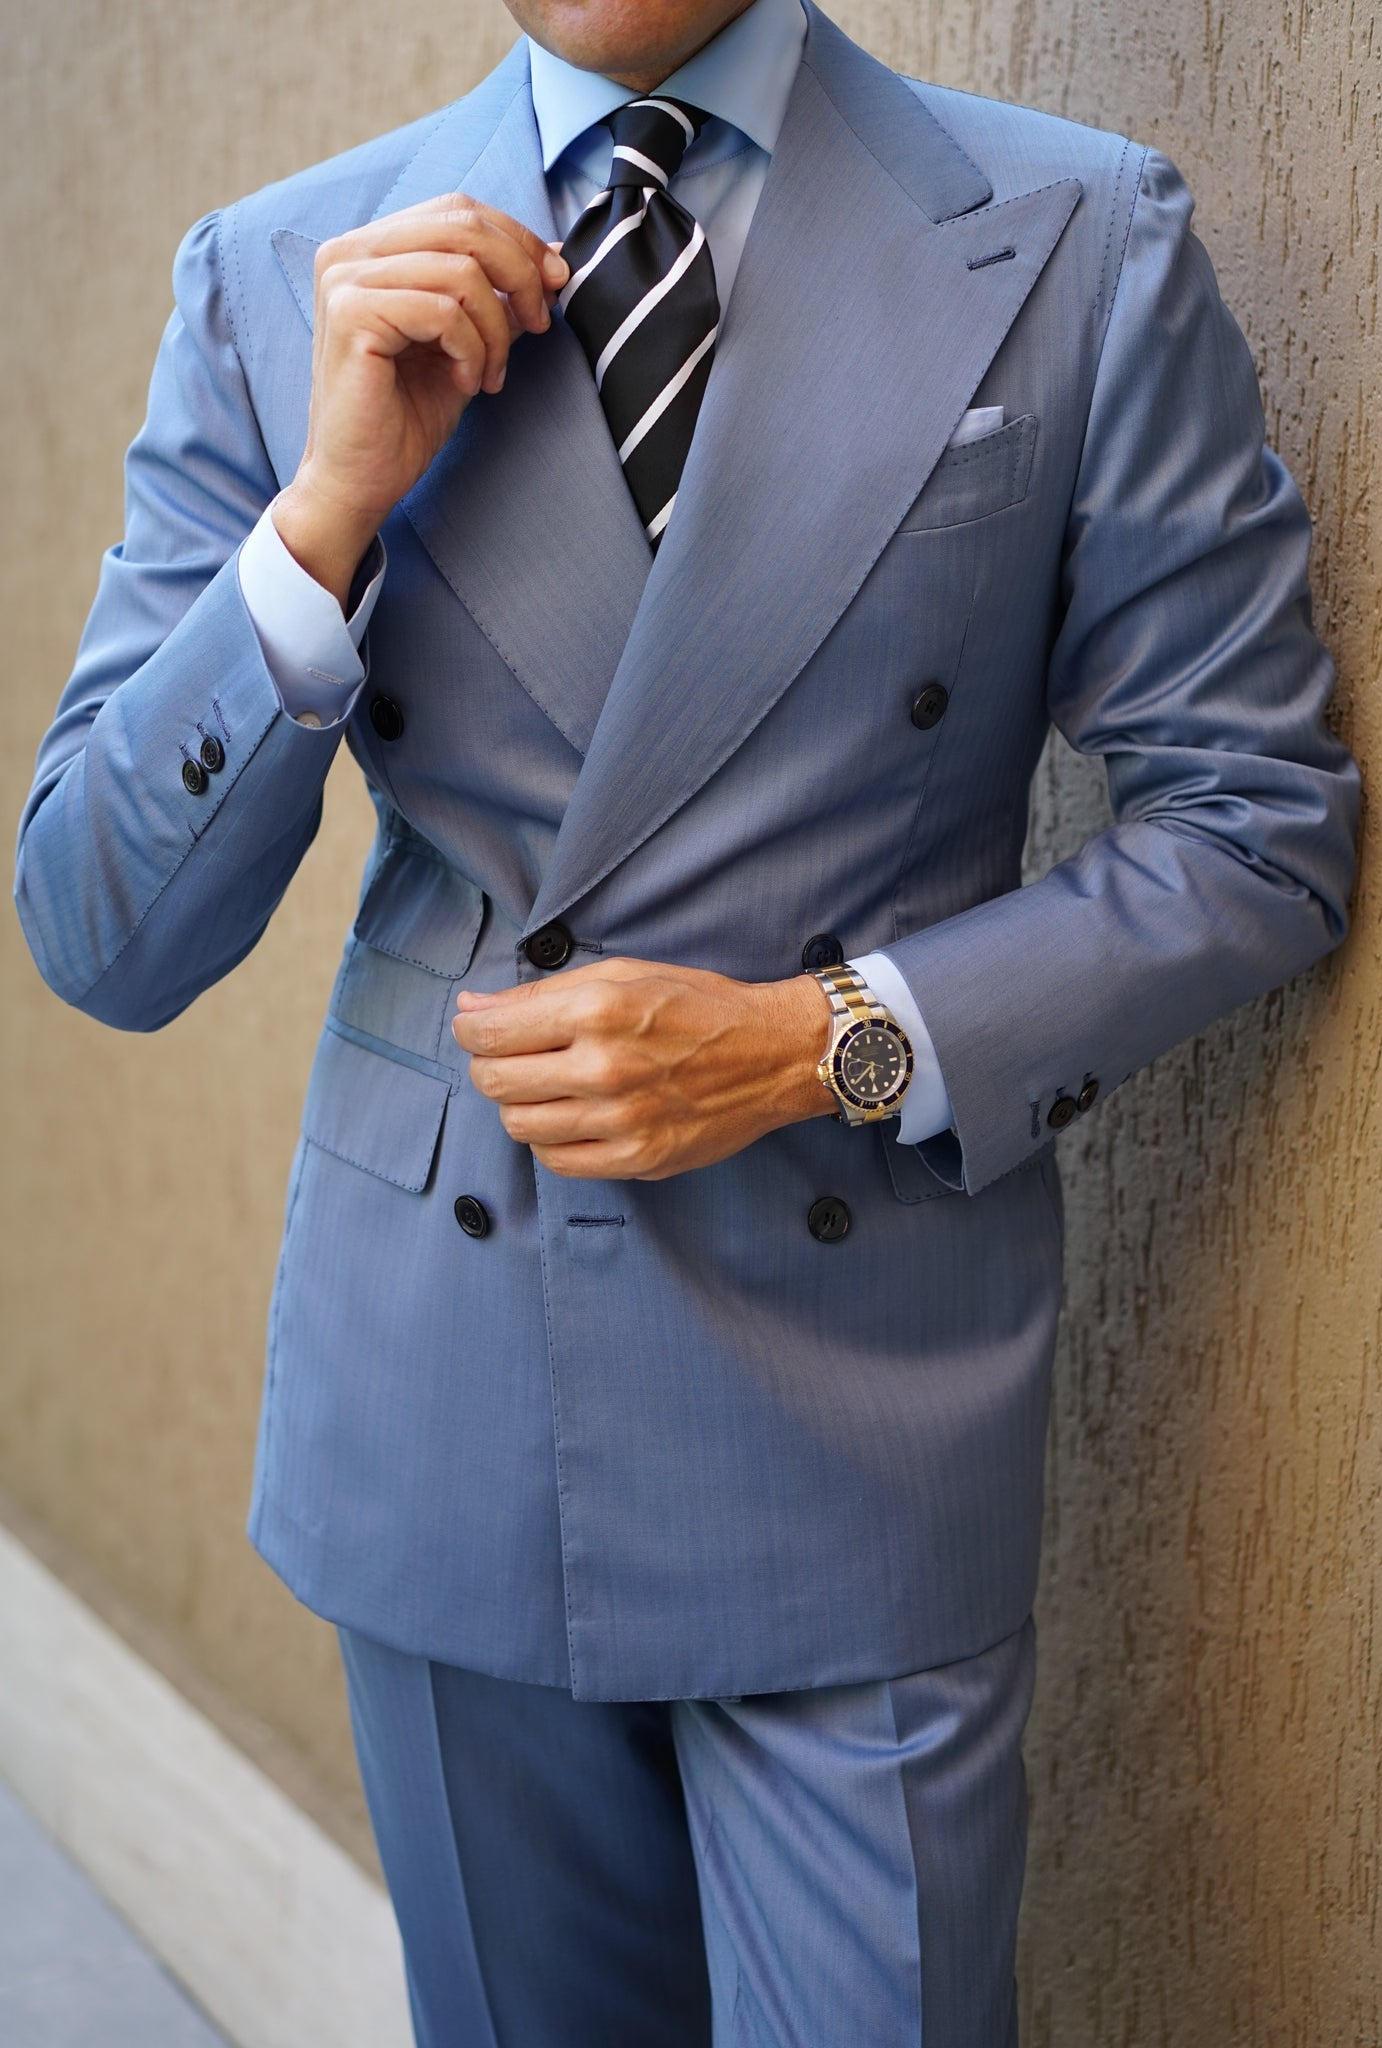 Portofino Light Blue Suit Premium Line